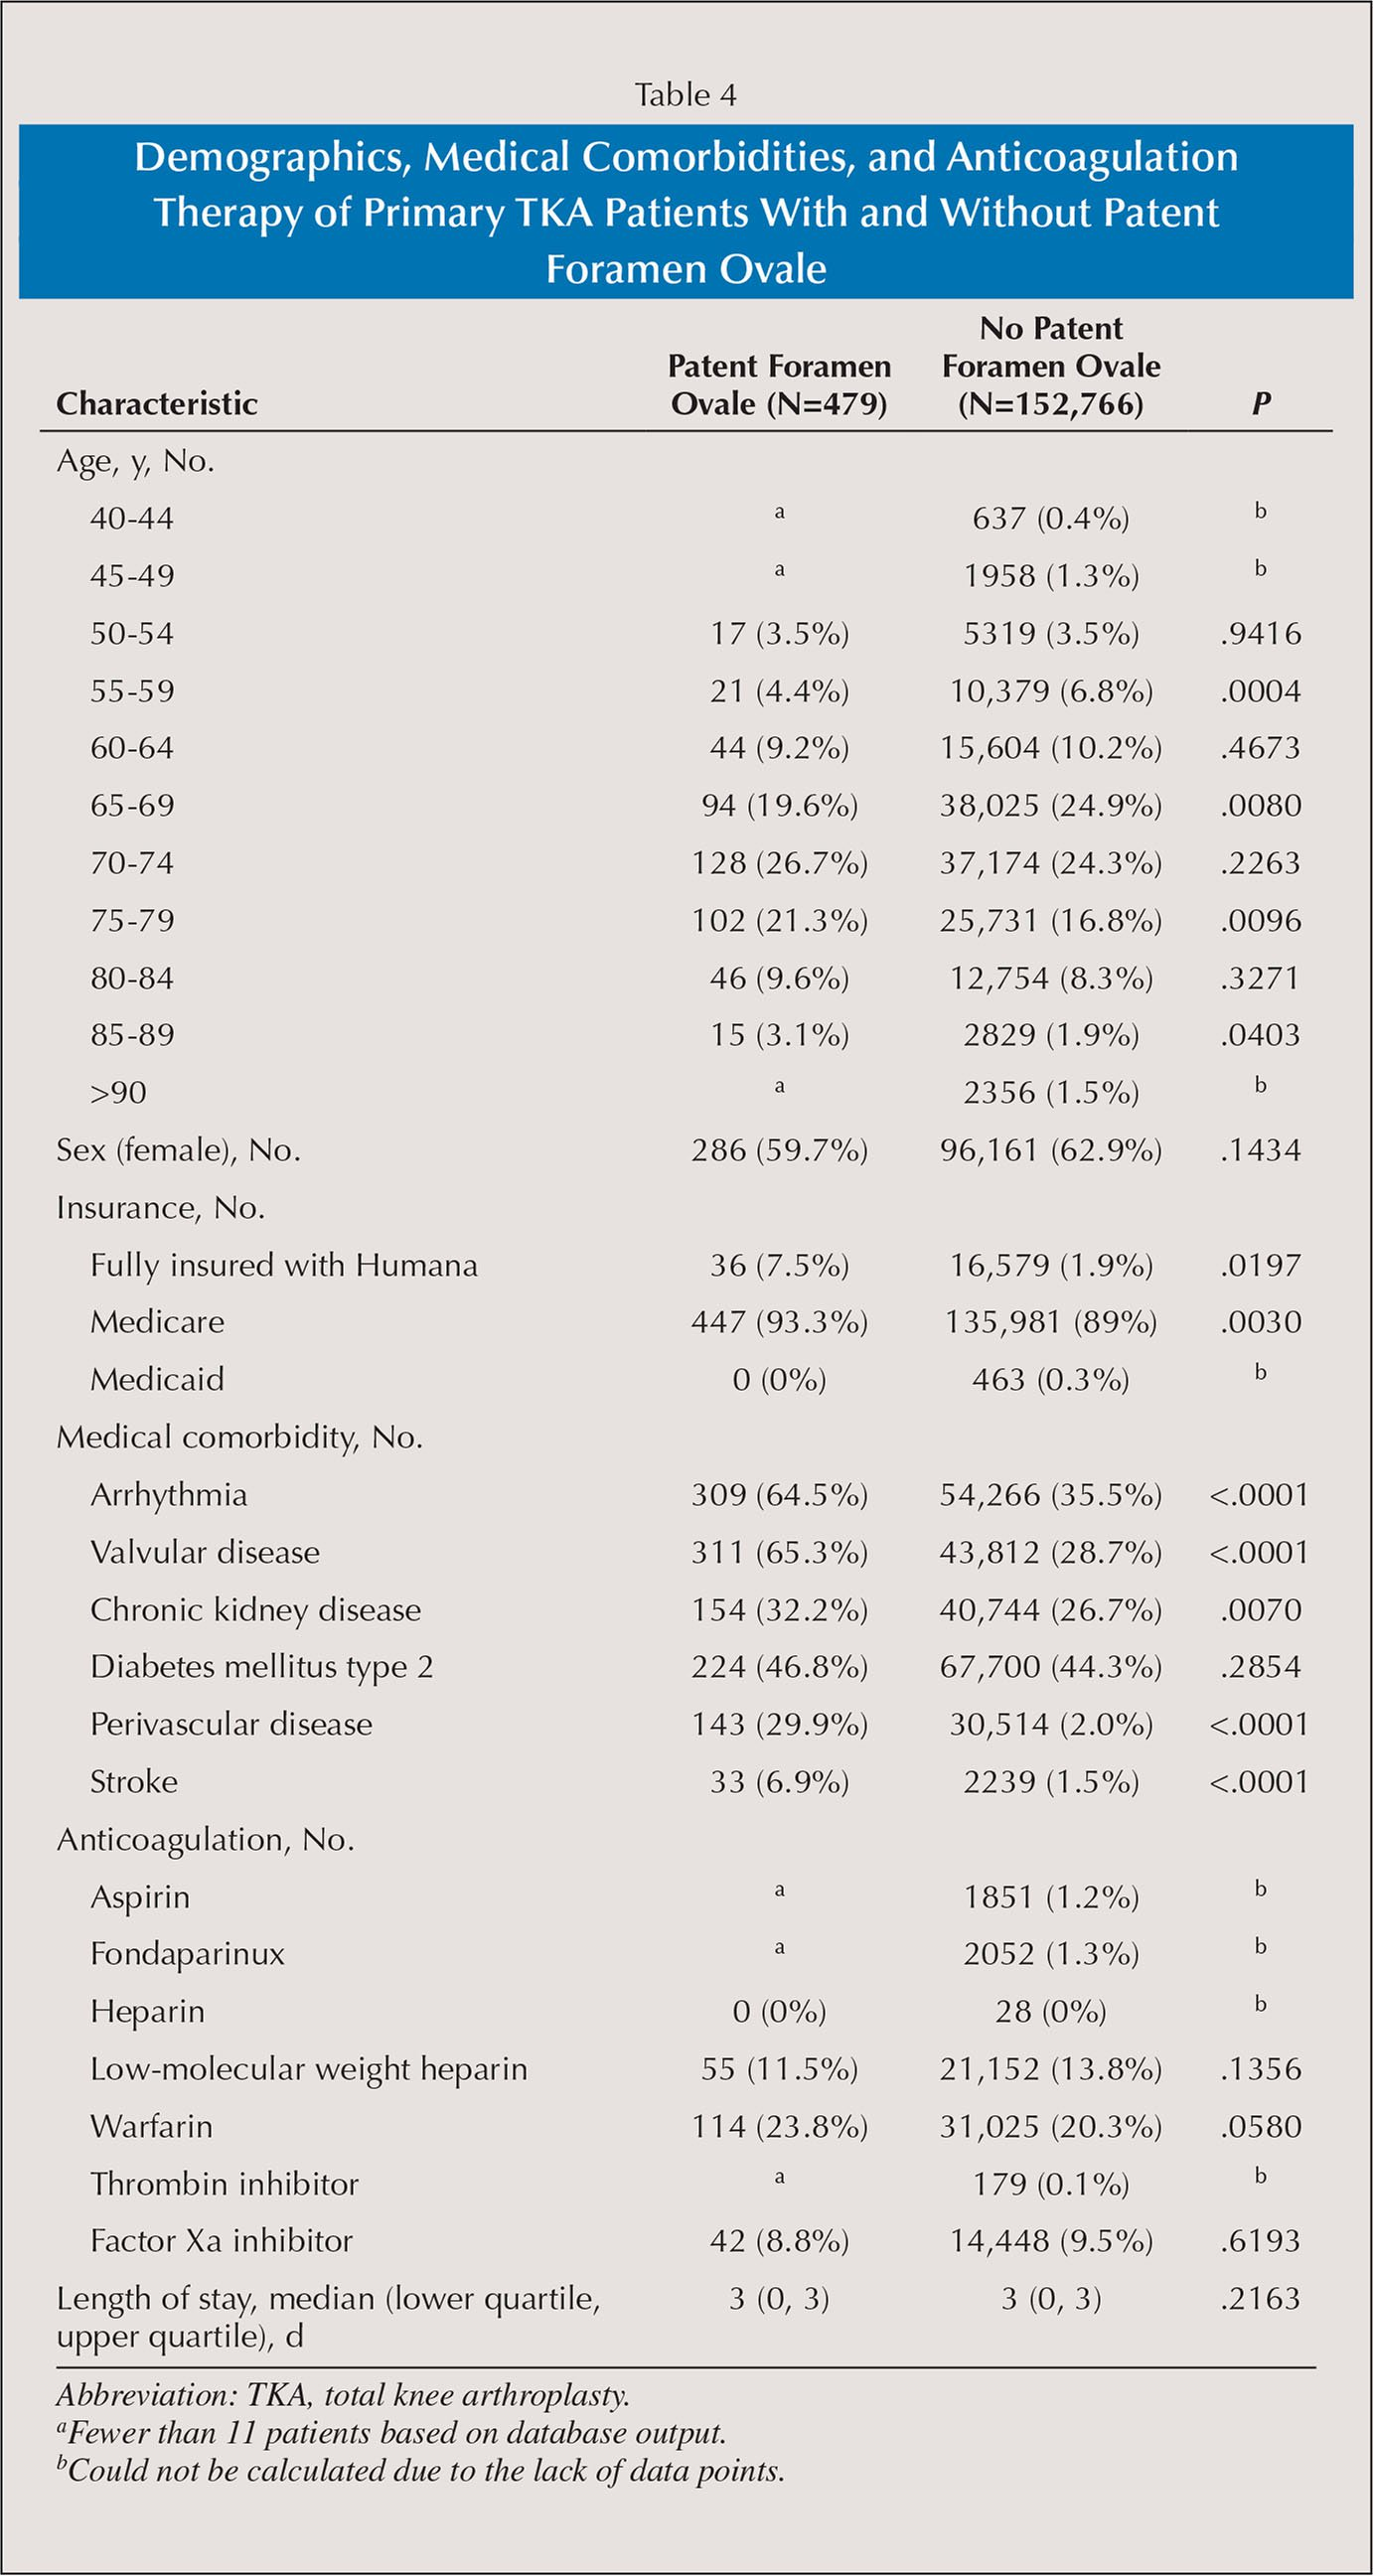 Demographics, Medical Comorbidities, and Anticoagulation Therapy of Primary TKA Patients With and Without Patent Foramen Ovale